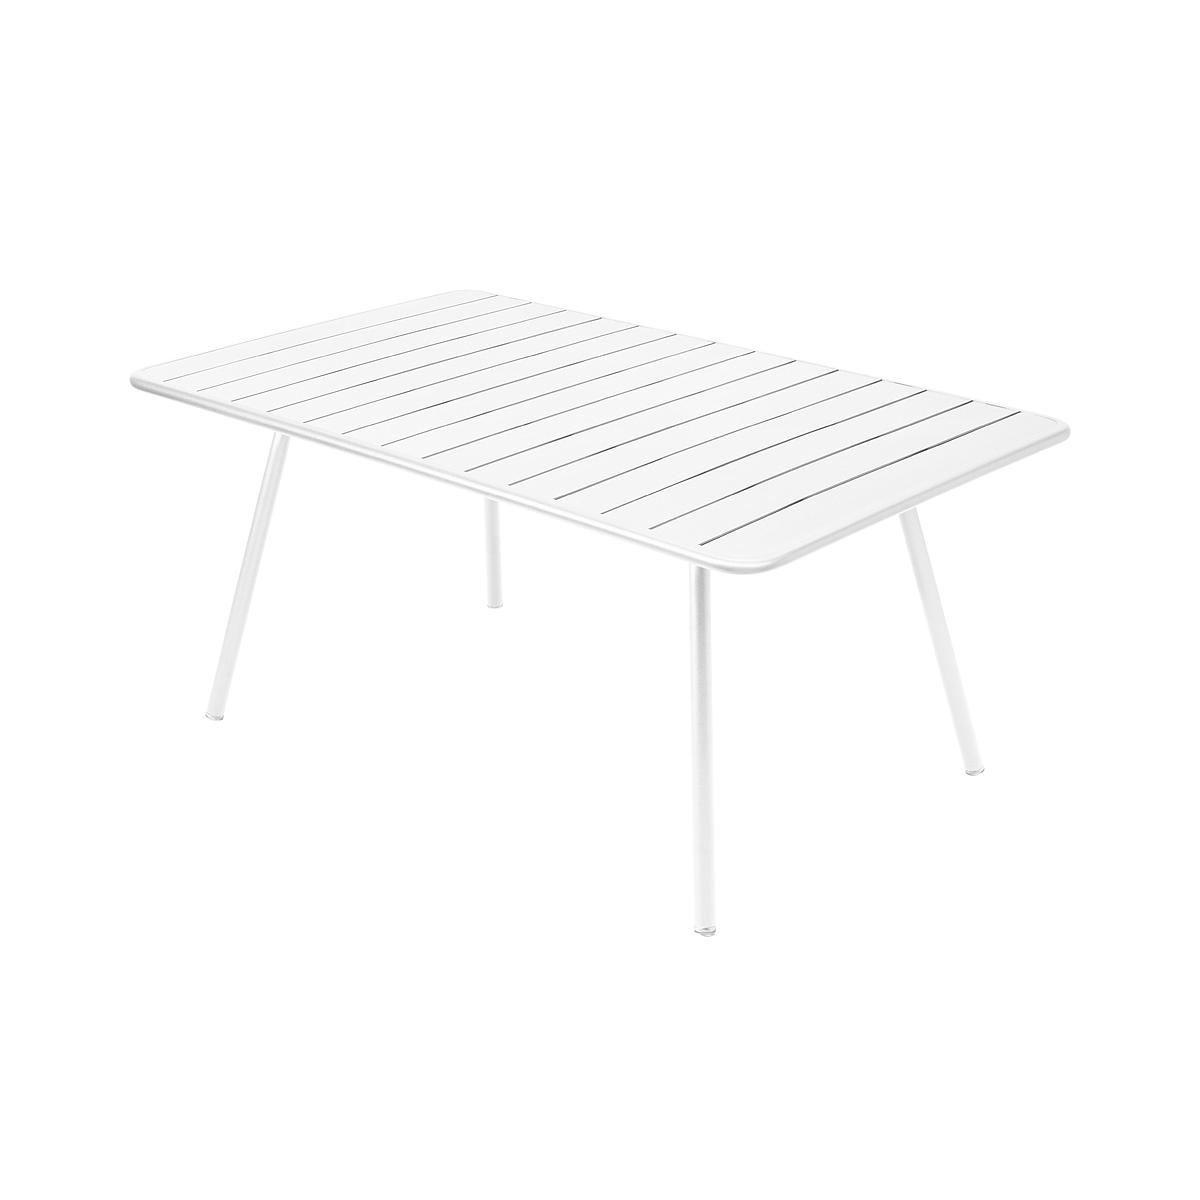 LUXEMBOURG by Fermob Table confort 6 blanc coton